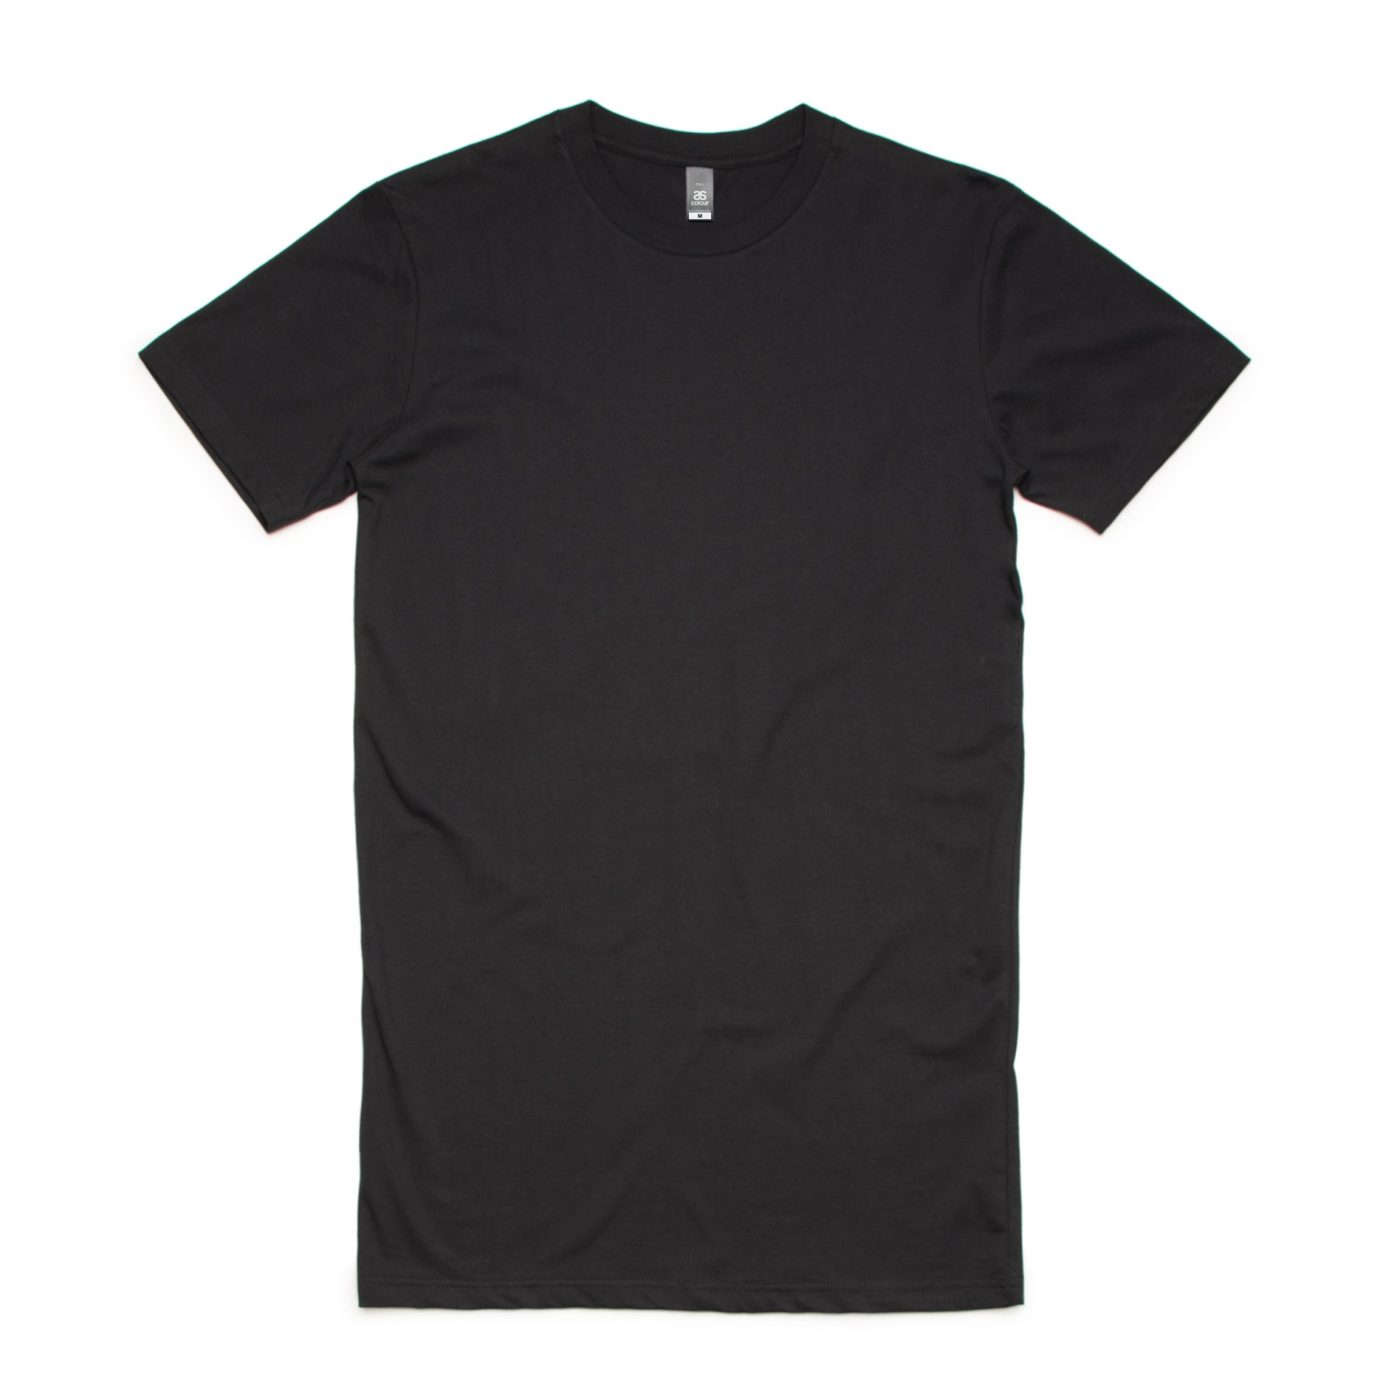 Black AS Colour AS5013 Tall Tee longer length tee great to print or embroider